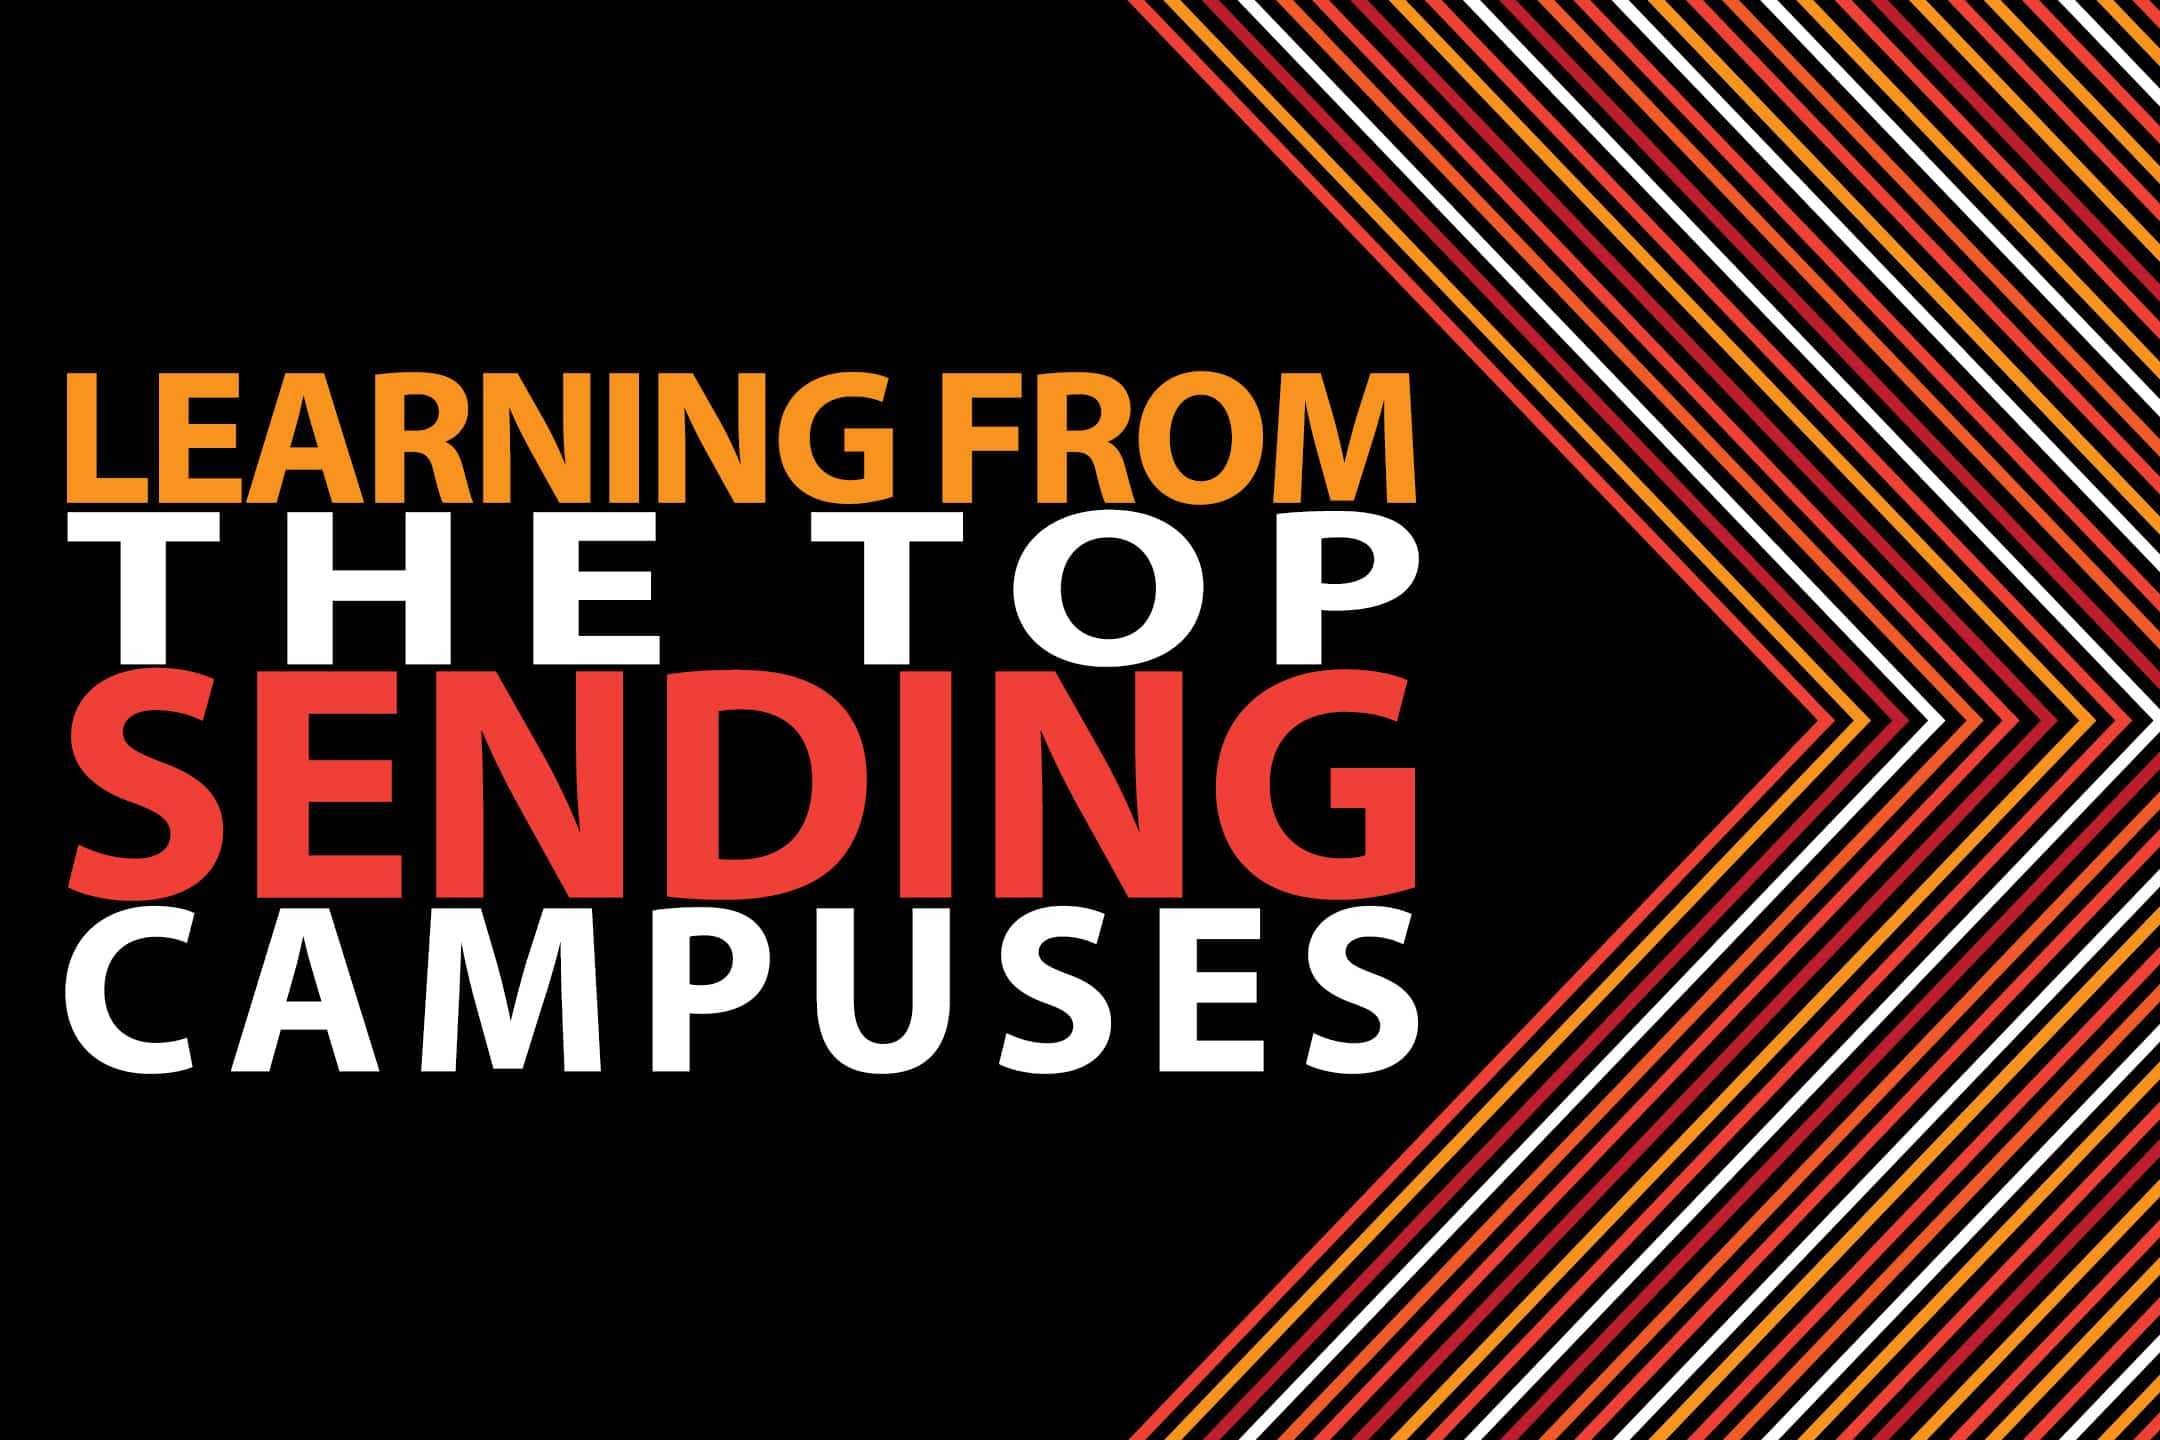 The Top Sending Campuses